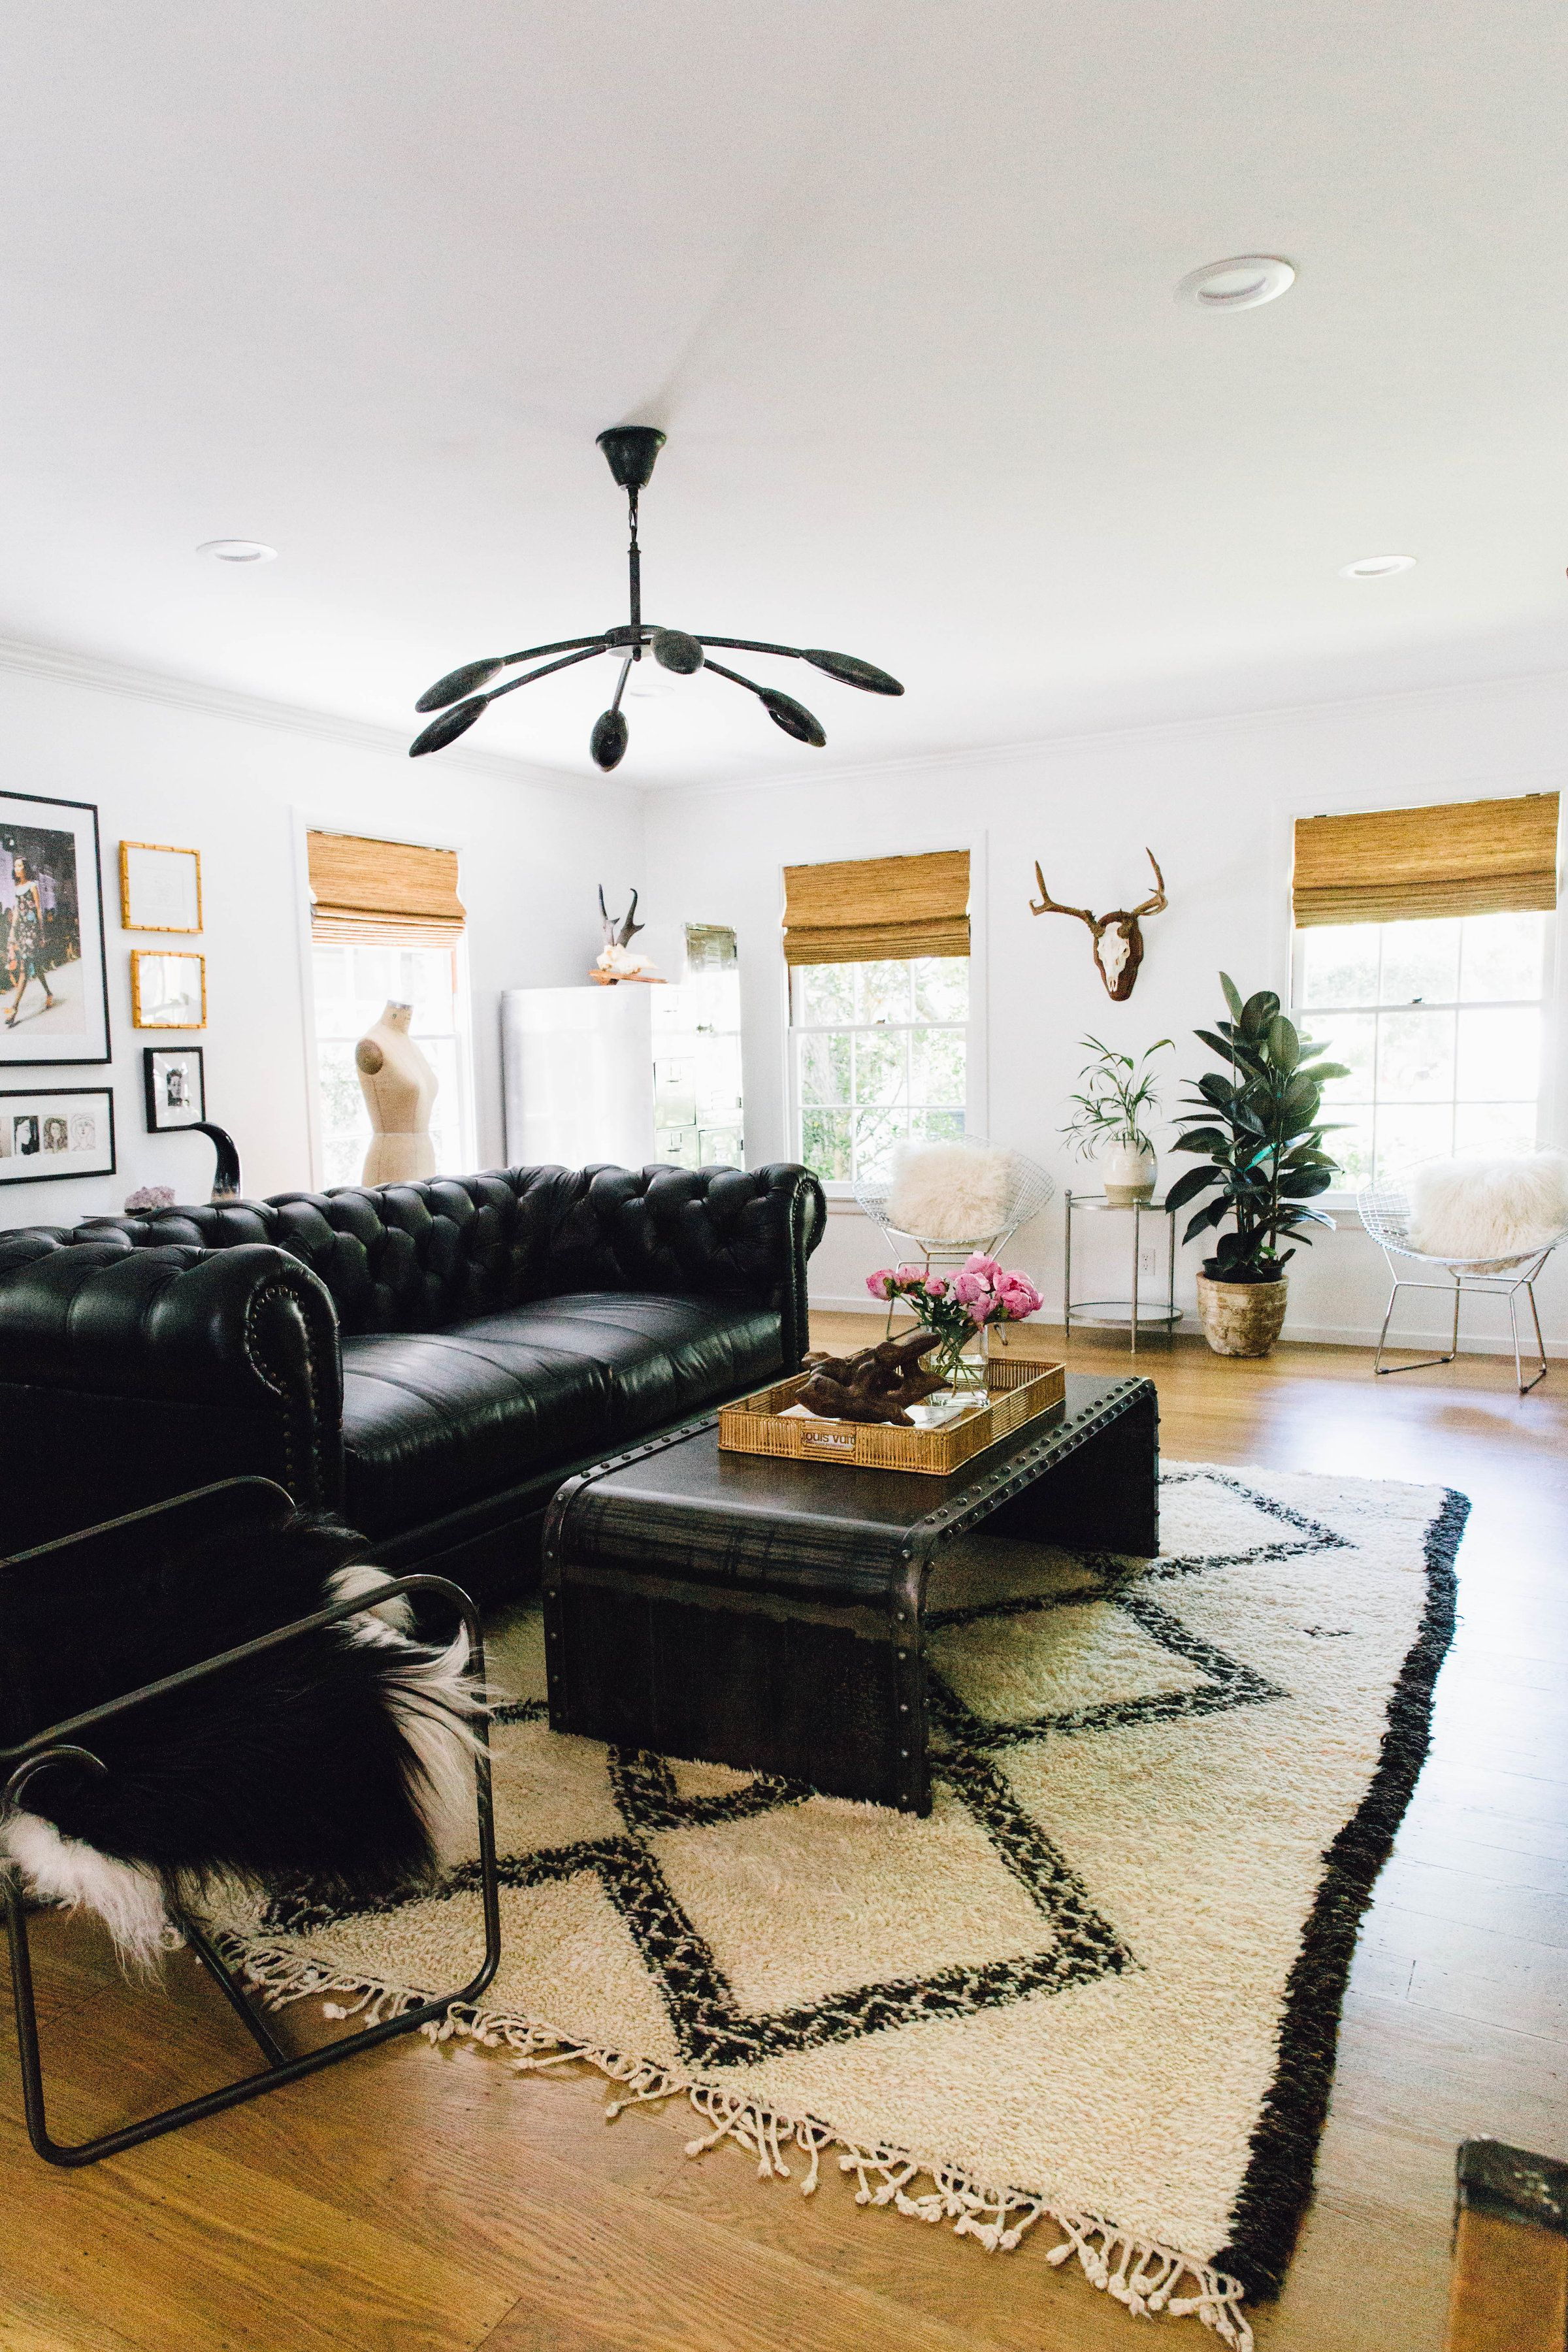 Before After Our Downstairs Remodel In 2018 Homedecor Rewiring A Room Home